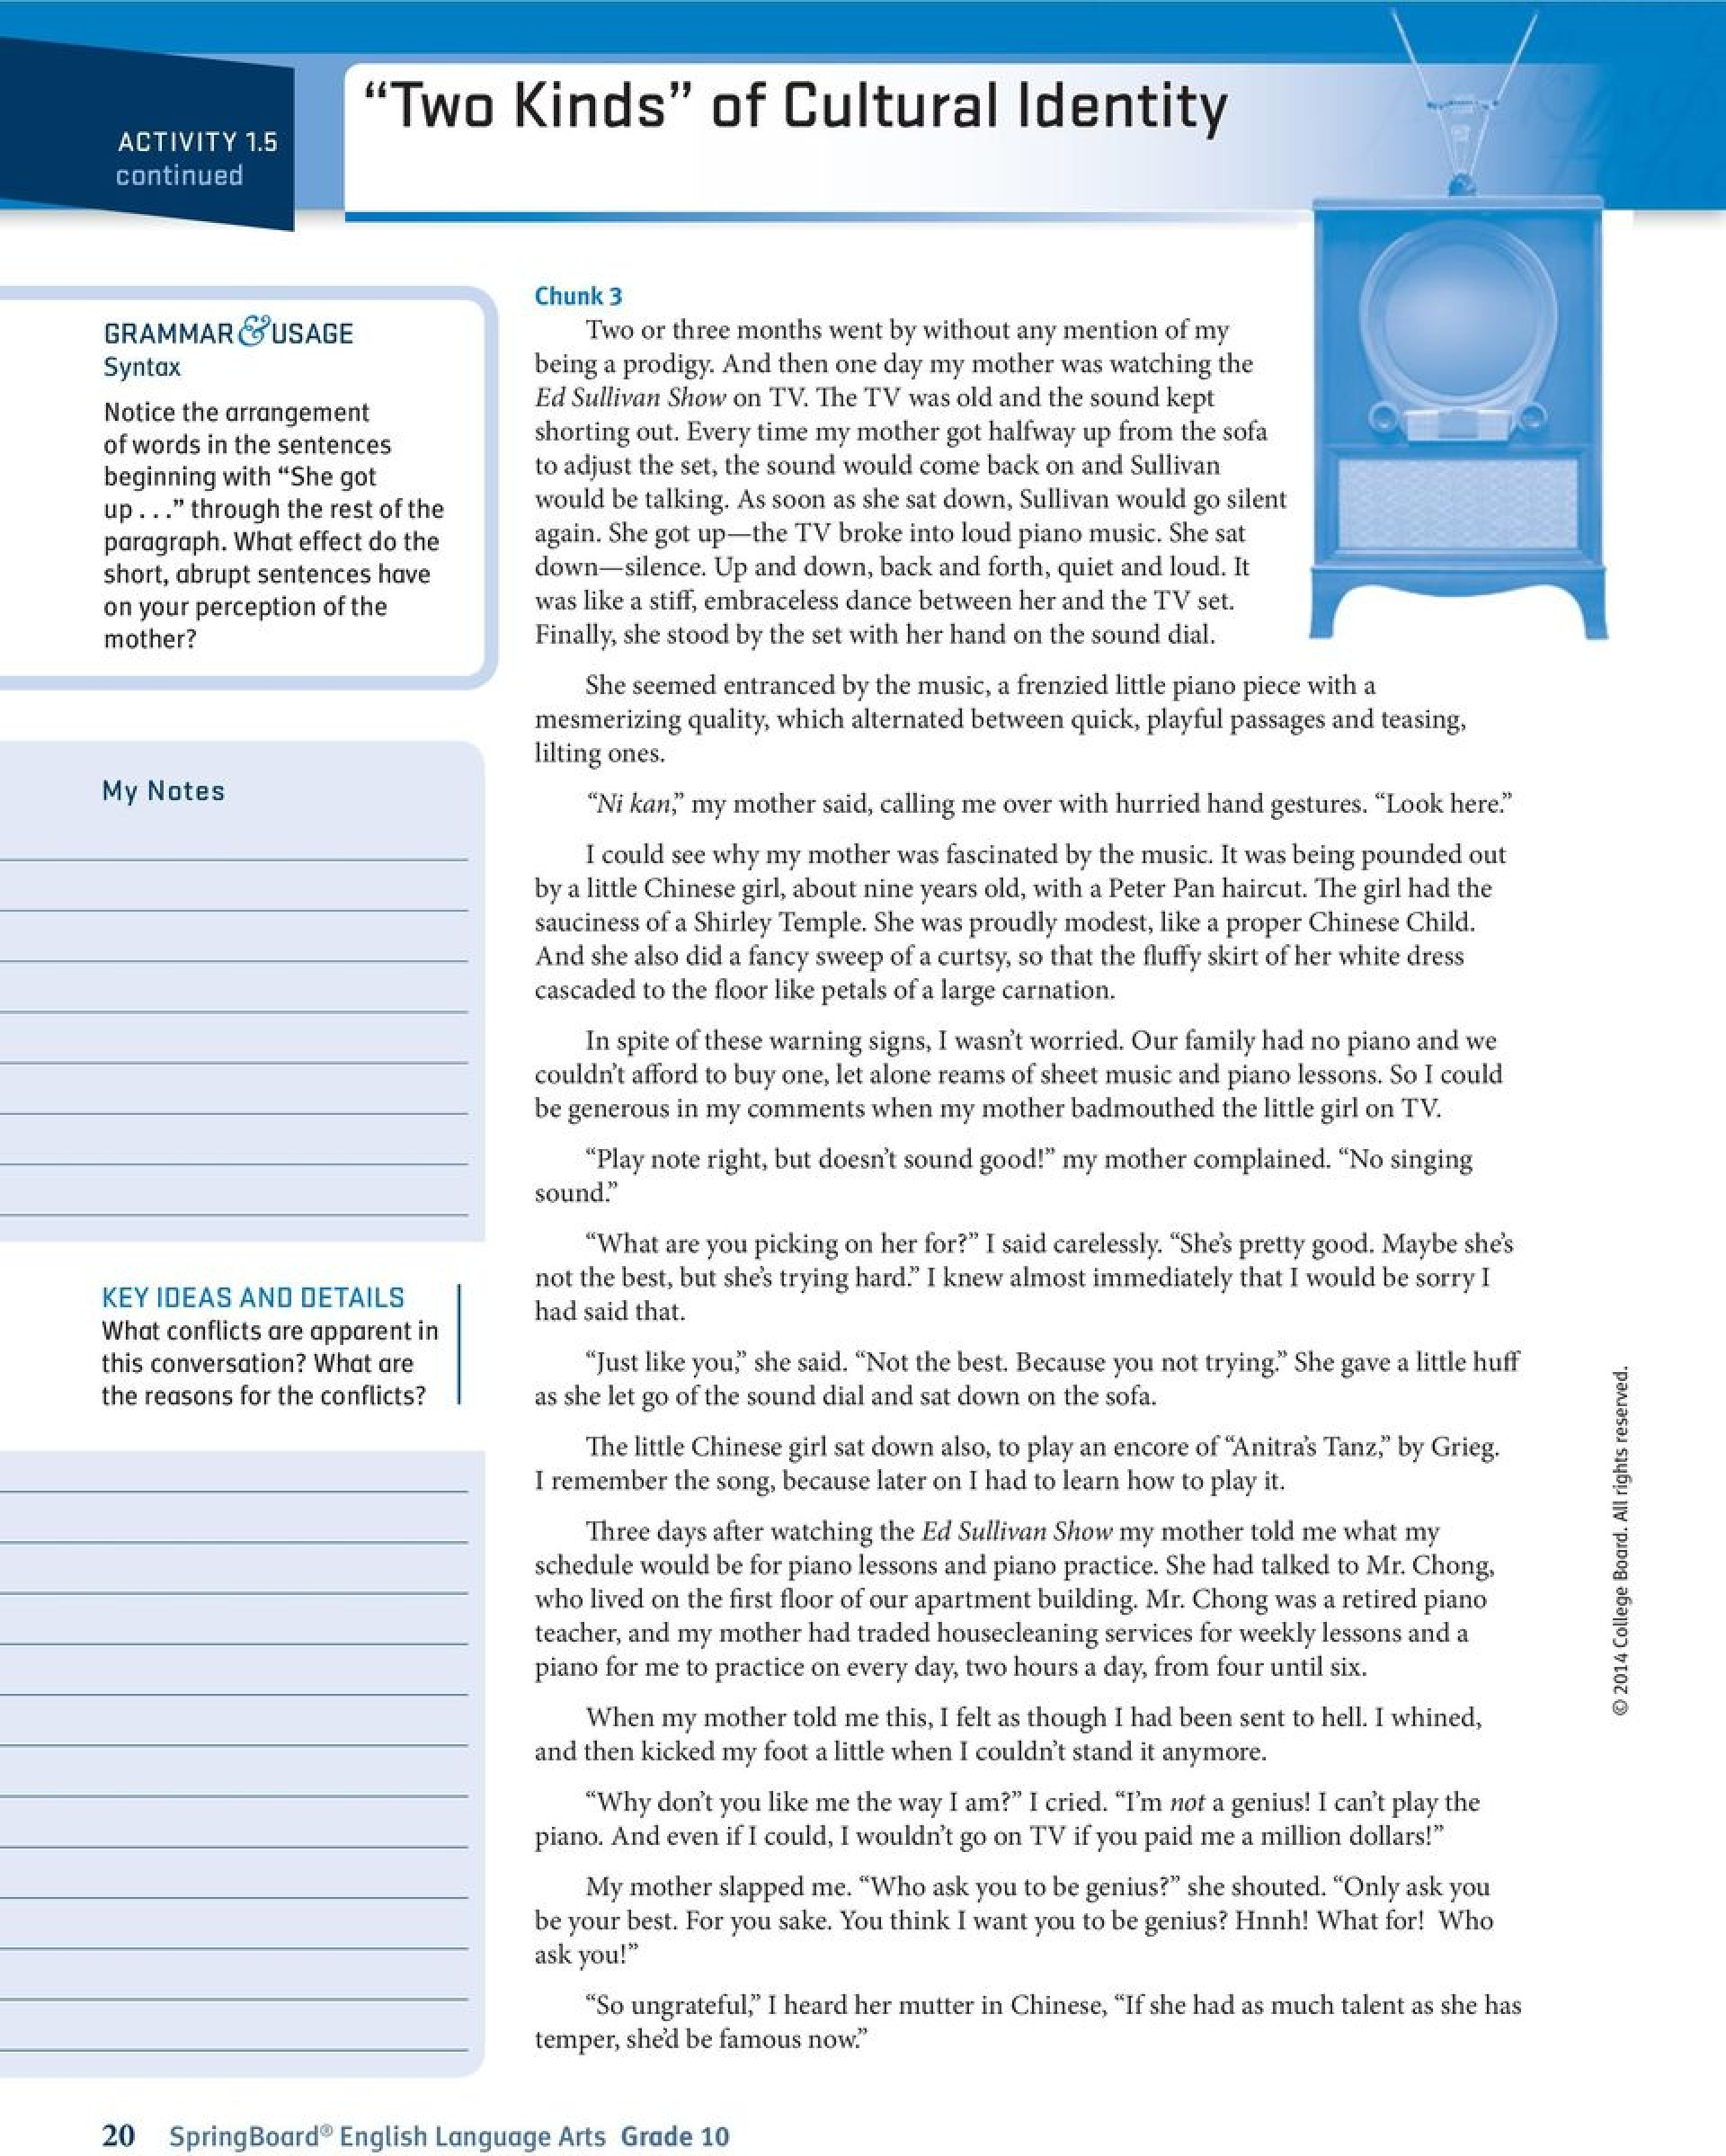 009 Essay Example Where Worlds Collide Pico Iyer Summary Page 20 Top 1920